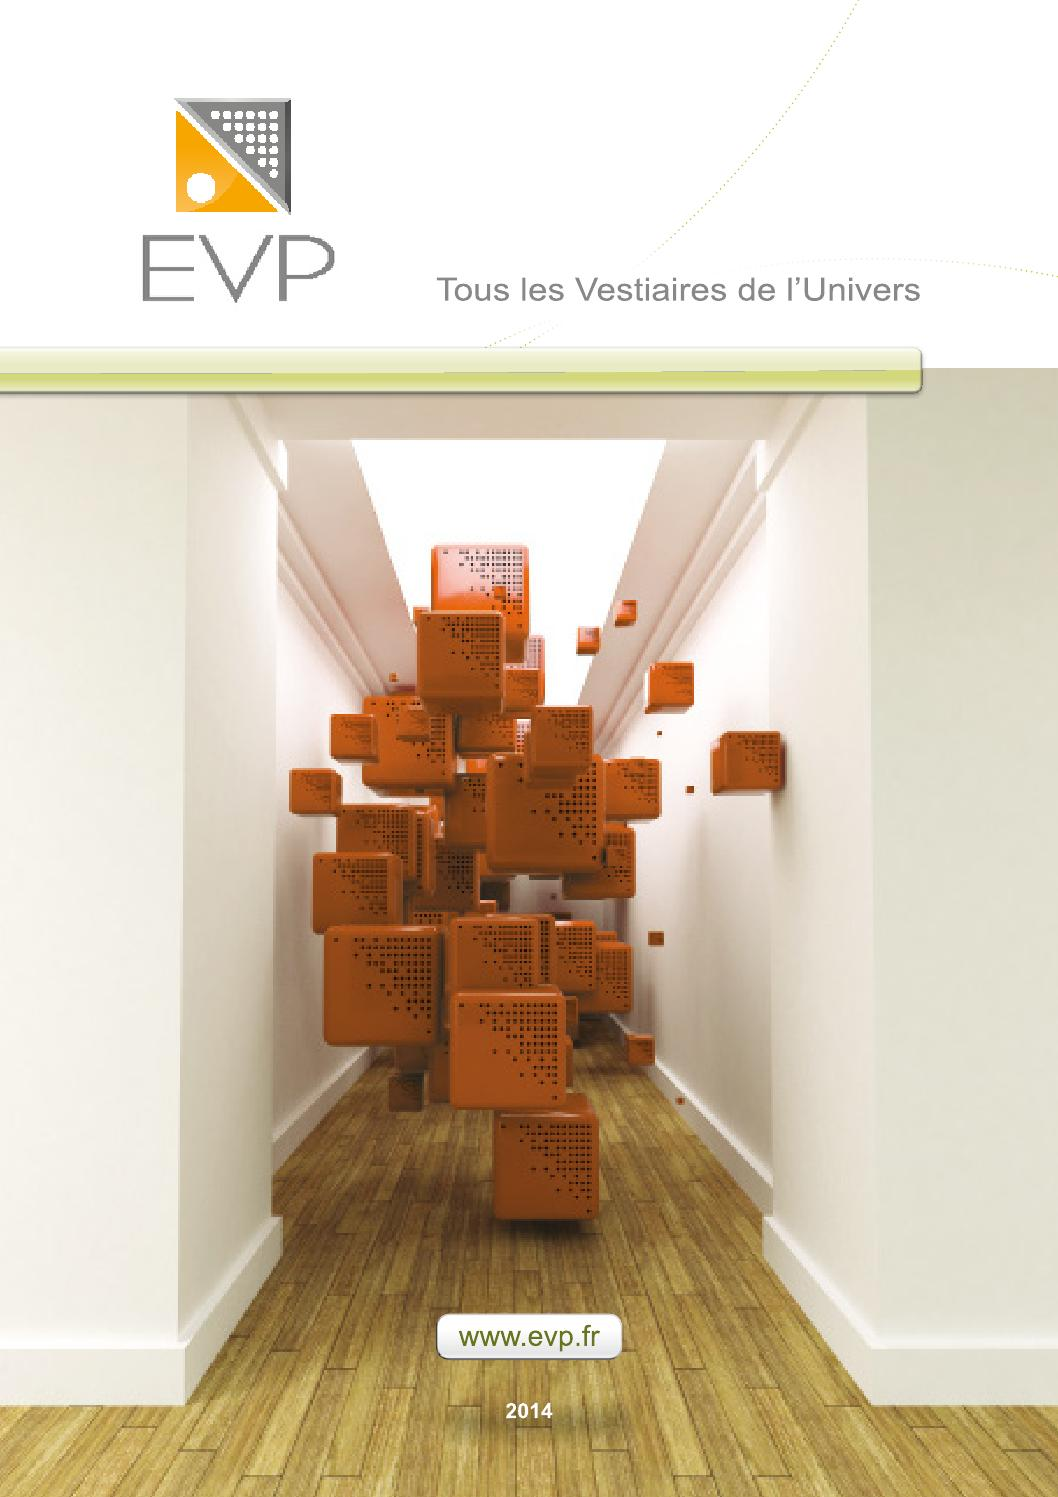 Evp Catalogue Vestiaires Mobilier 2015 By Issuu Abcd wOPXn0k8